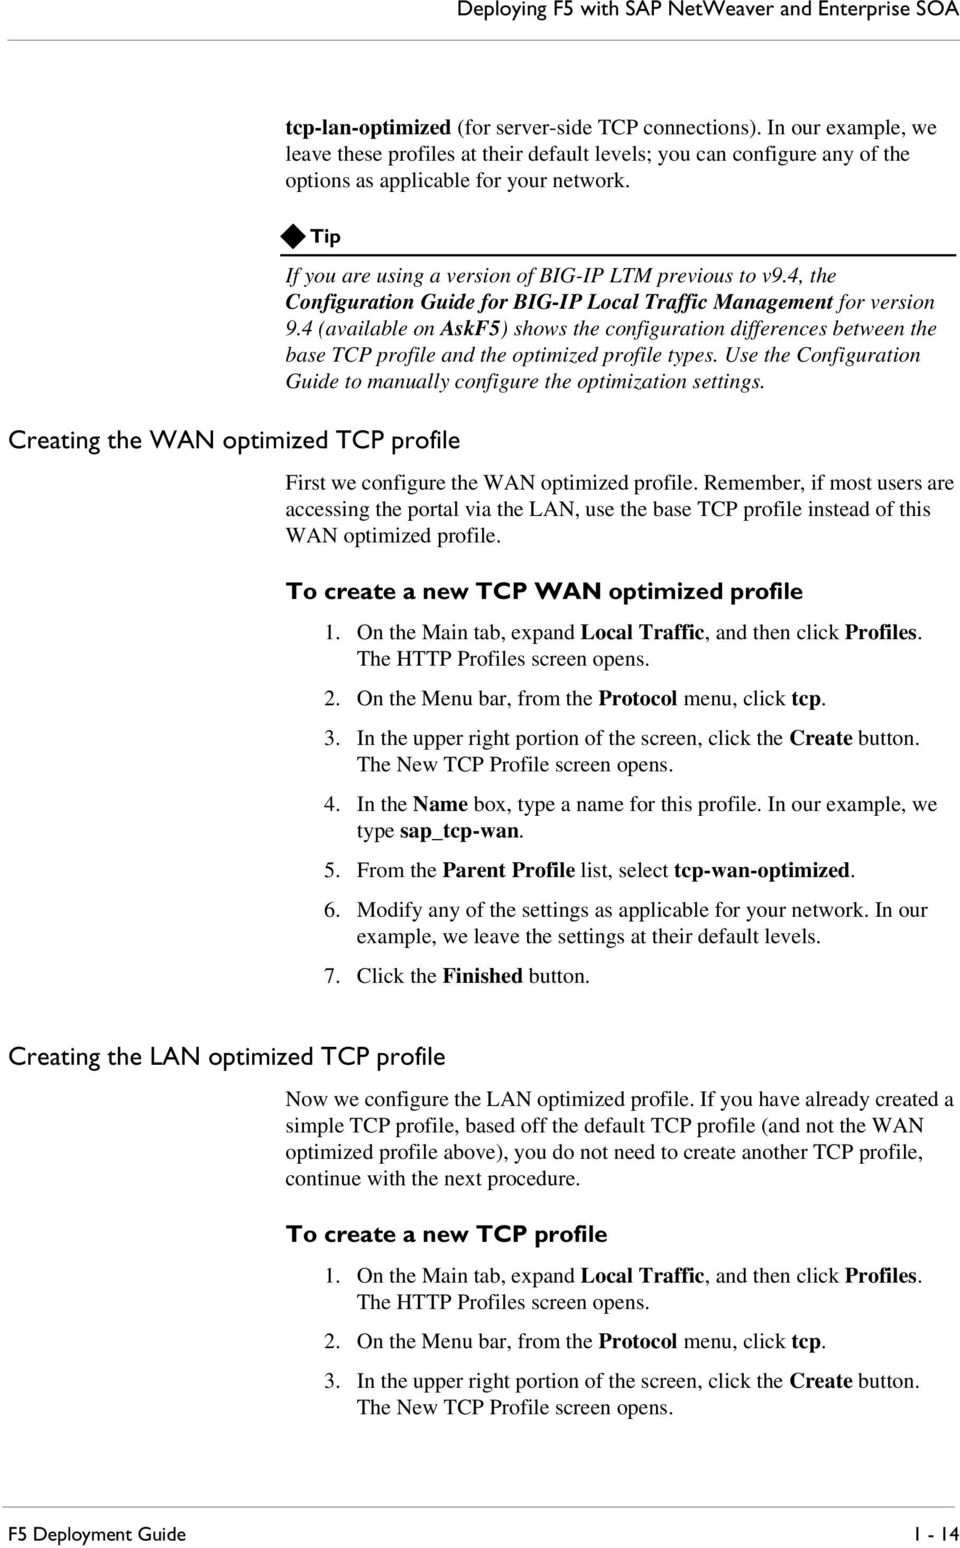 Tip Creating the WAN optimized TCP profile If you are using a version of BIG-IP LTM previous to v9.4, the Configuration Guide for BIG-IP Local Traffic Management for version 9.